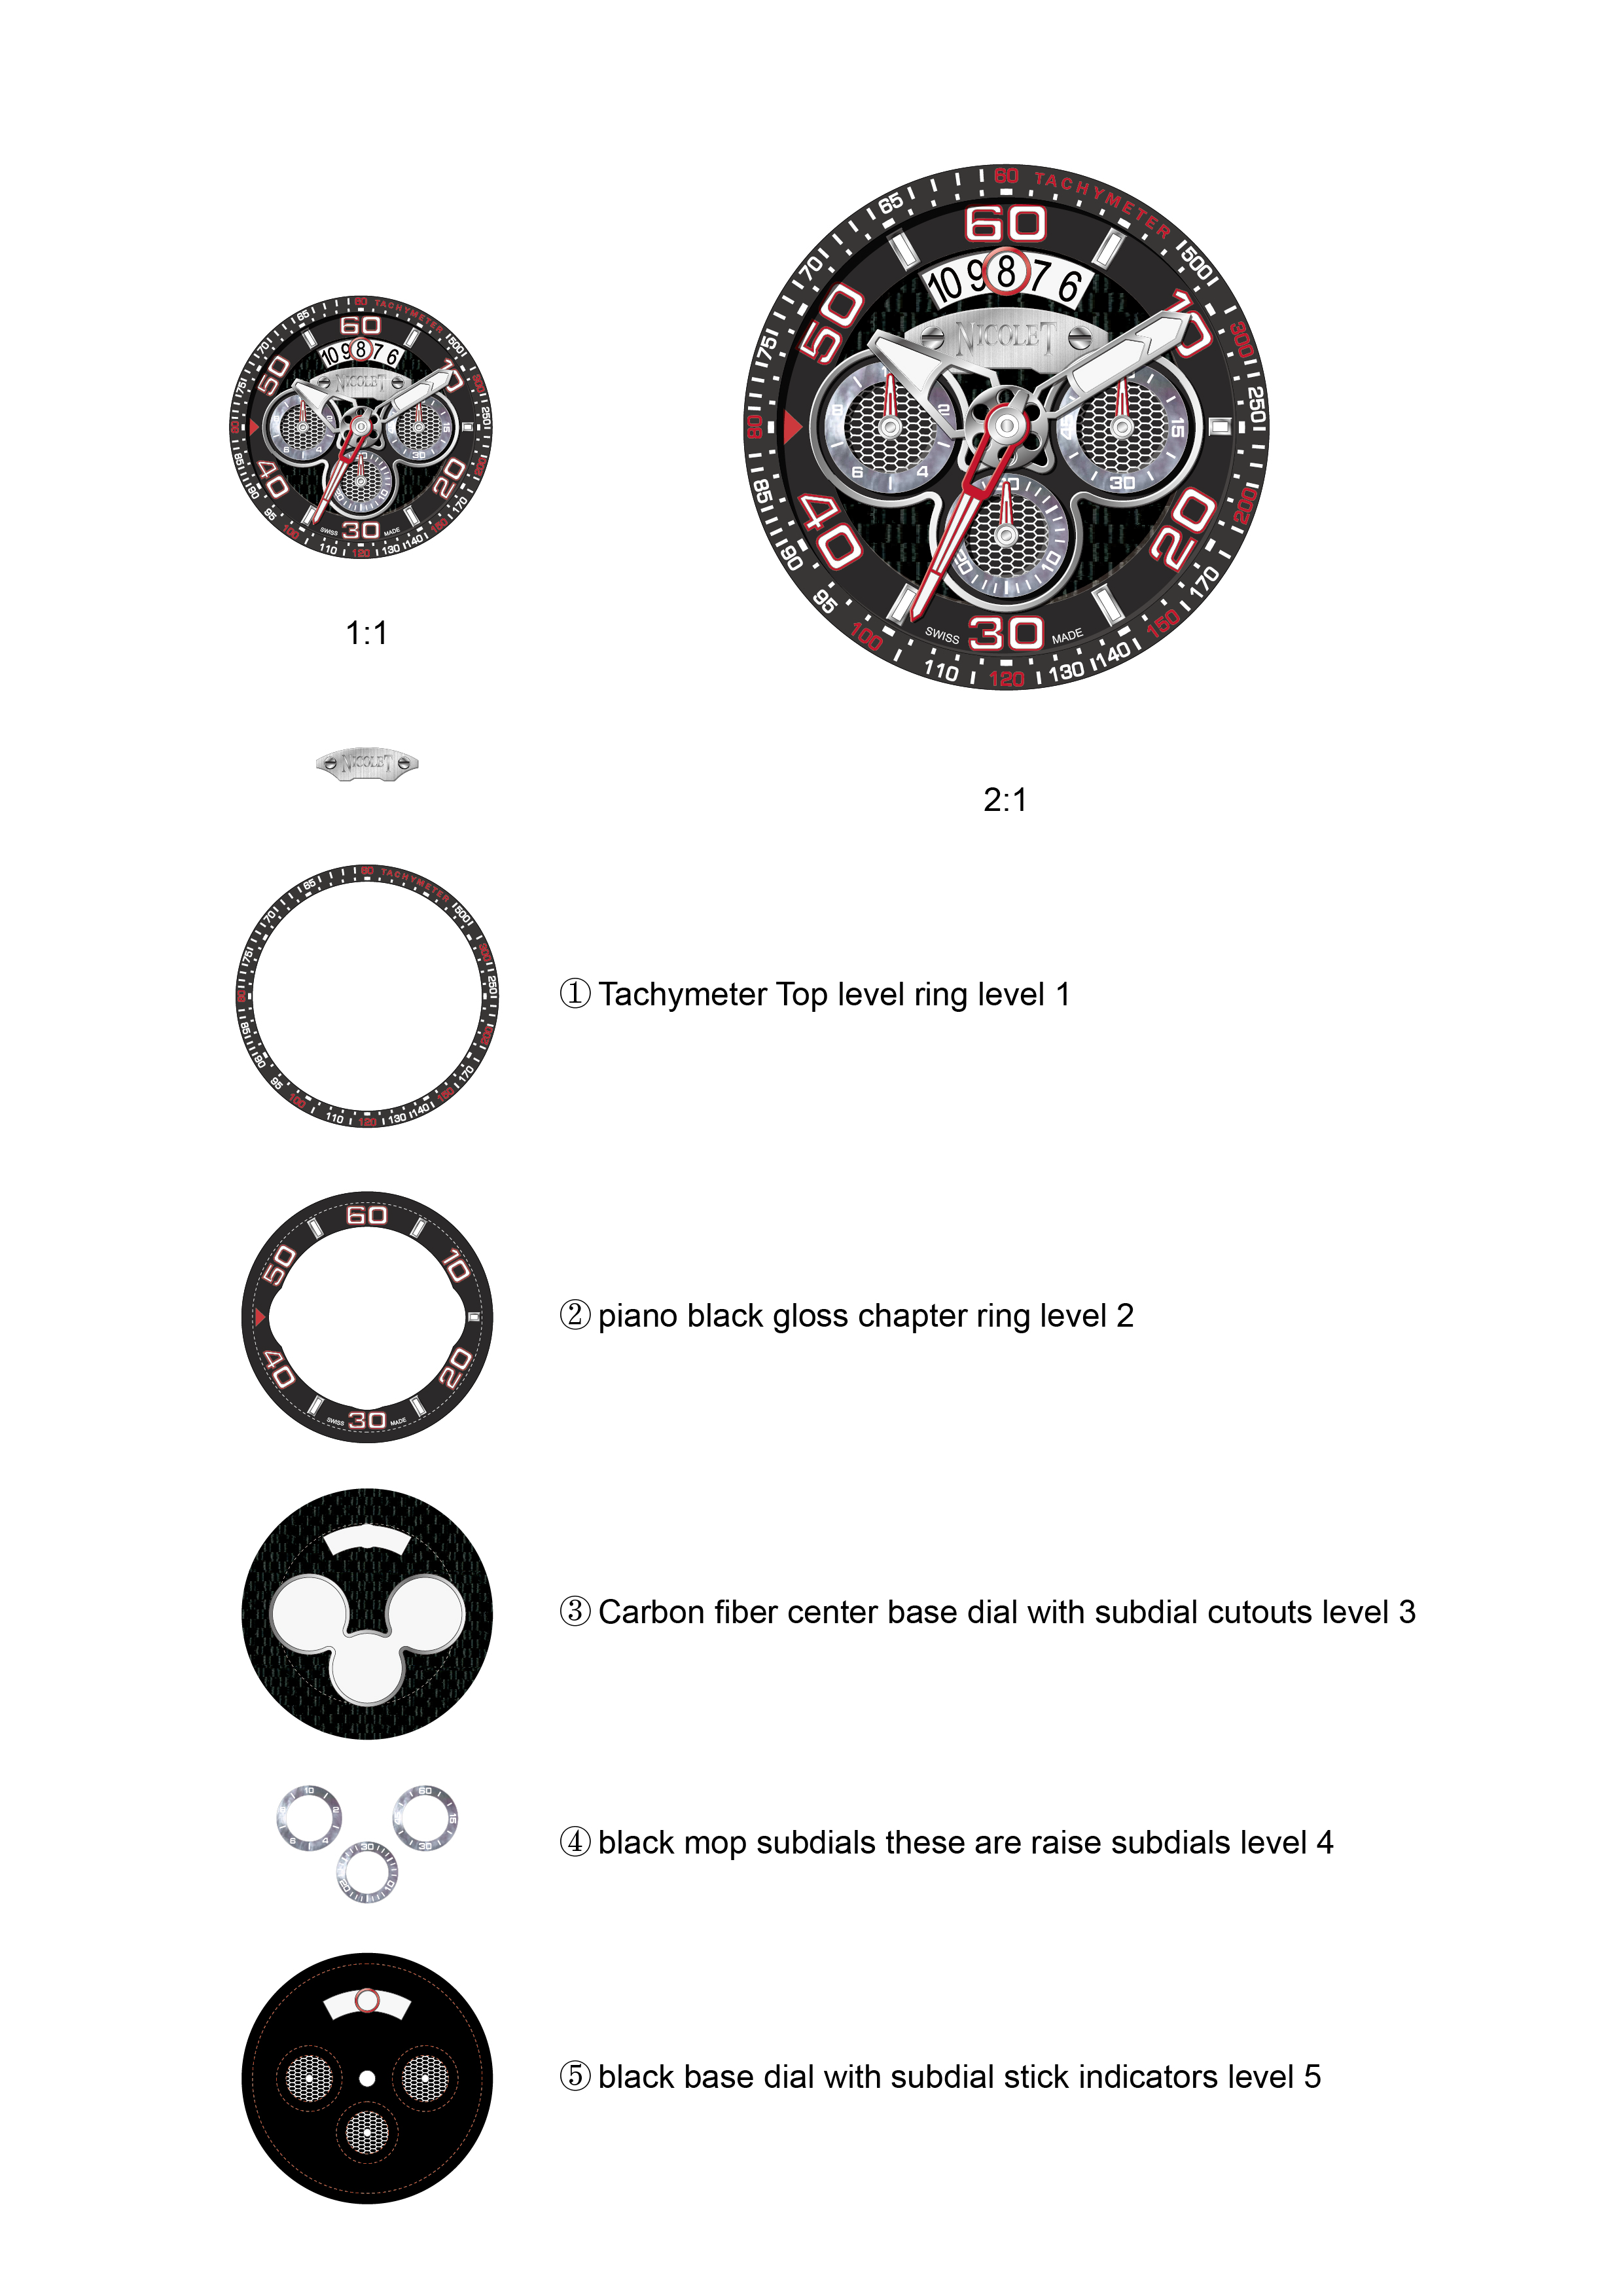 Trimuph Dial.png